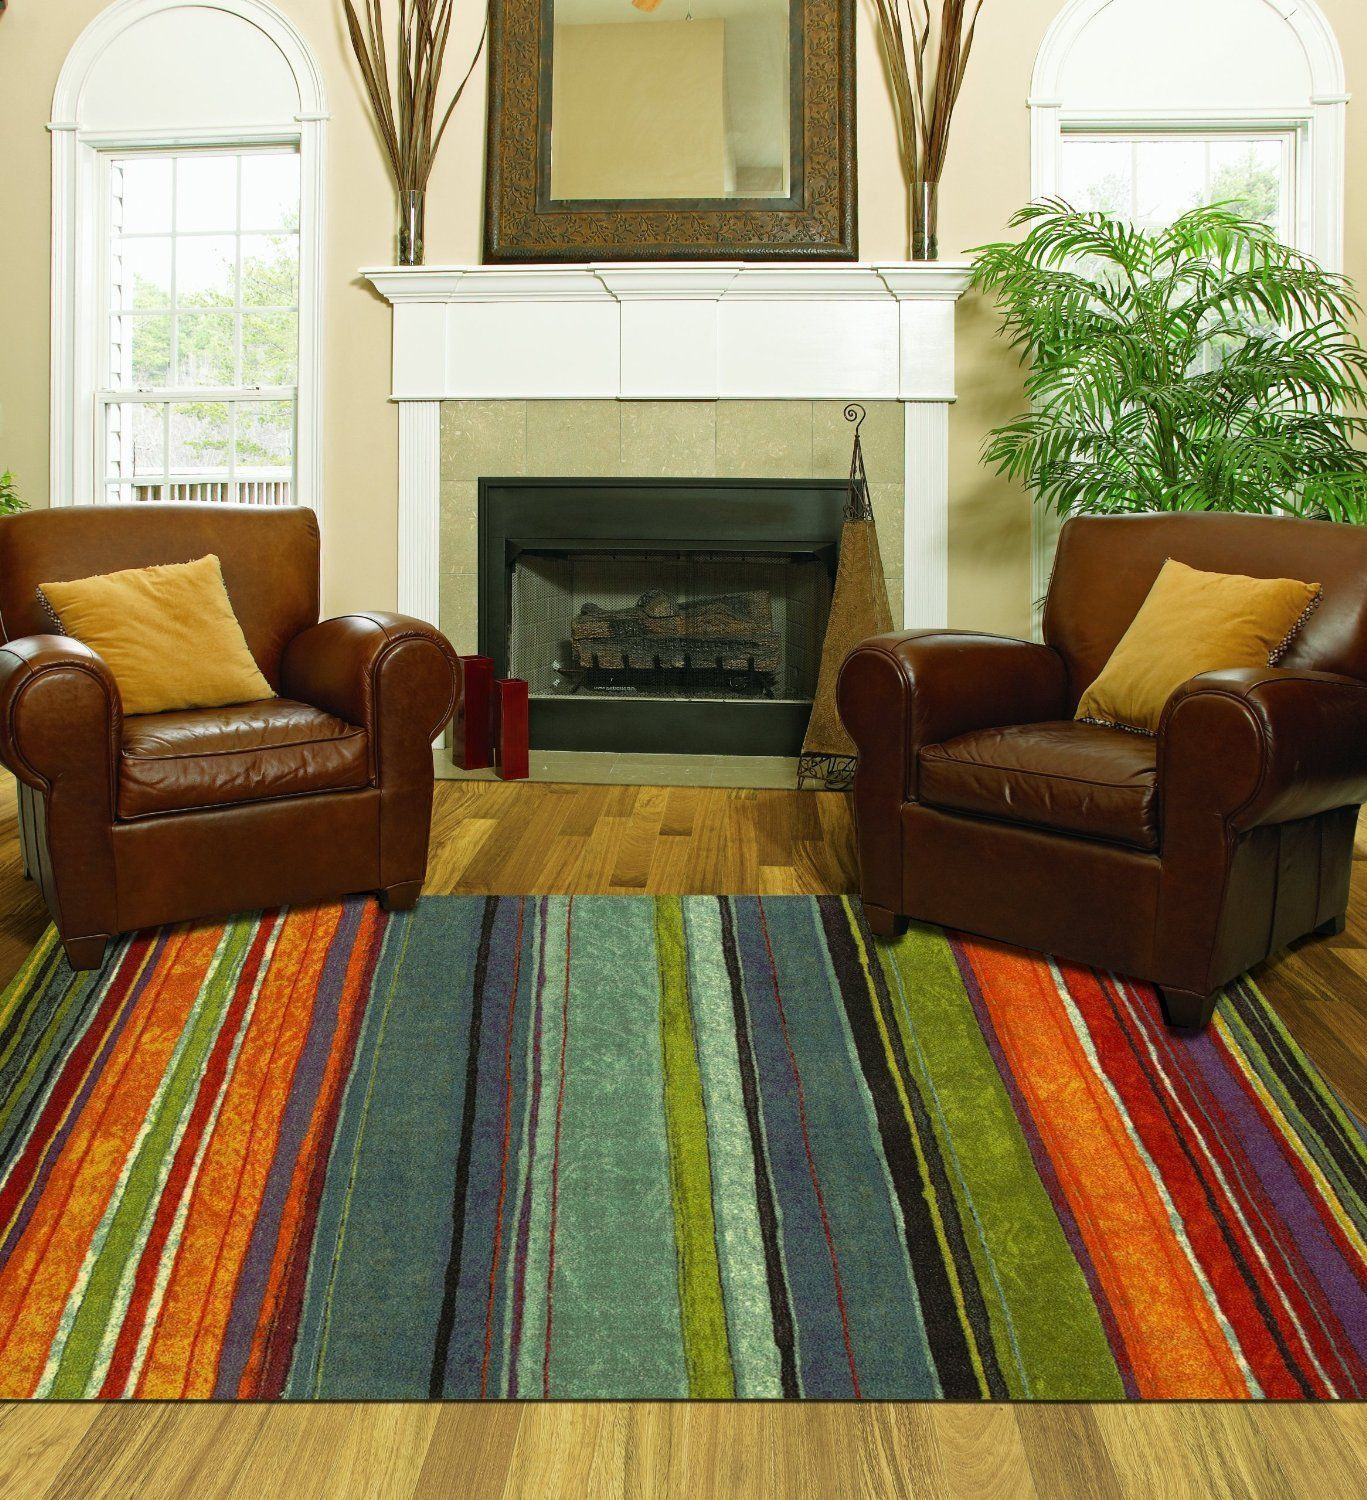 Best ideas about Family Room Area Rugs . Save or Pin Area Rug Colorful 8x10 Living Room Size Carpet Home Now.